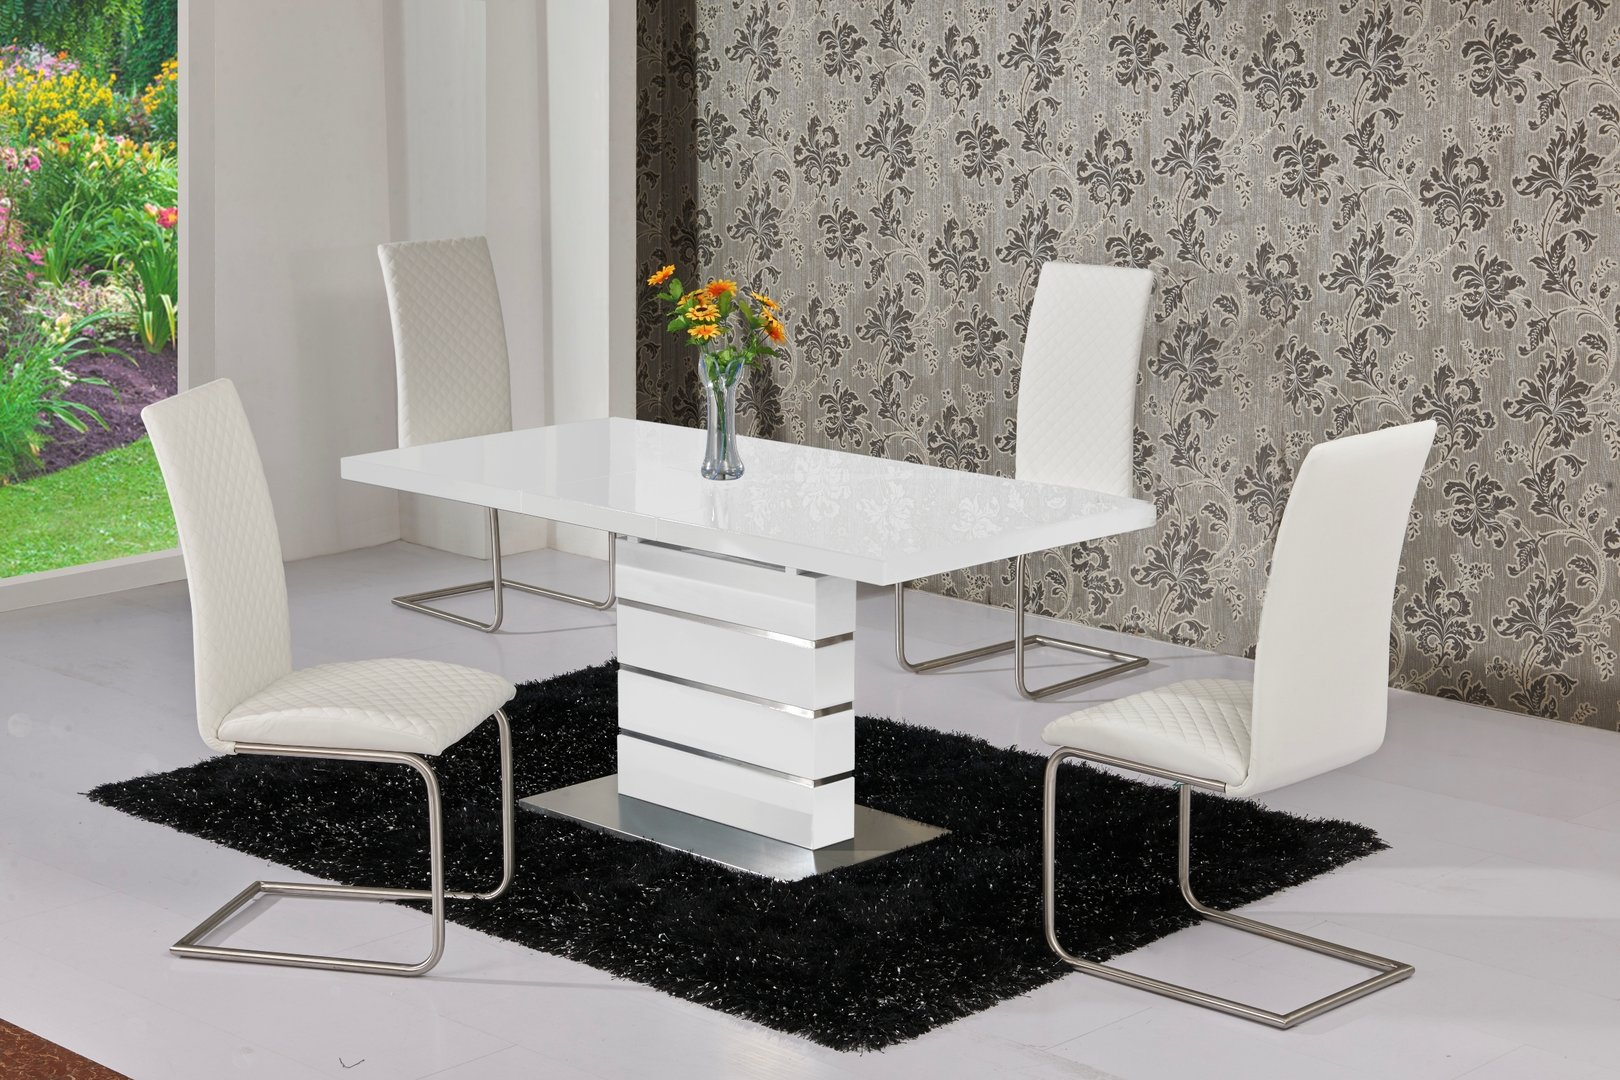 Extendable White High Gloss Dining Table and 6 White Chairs